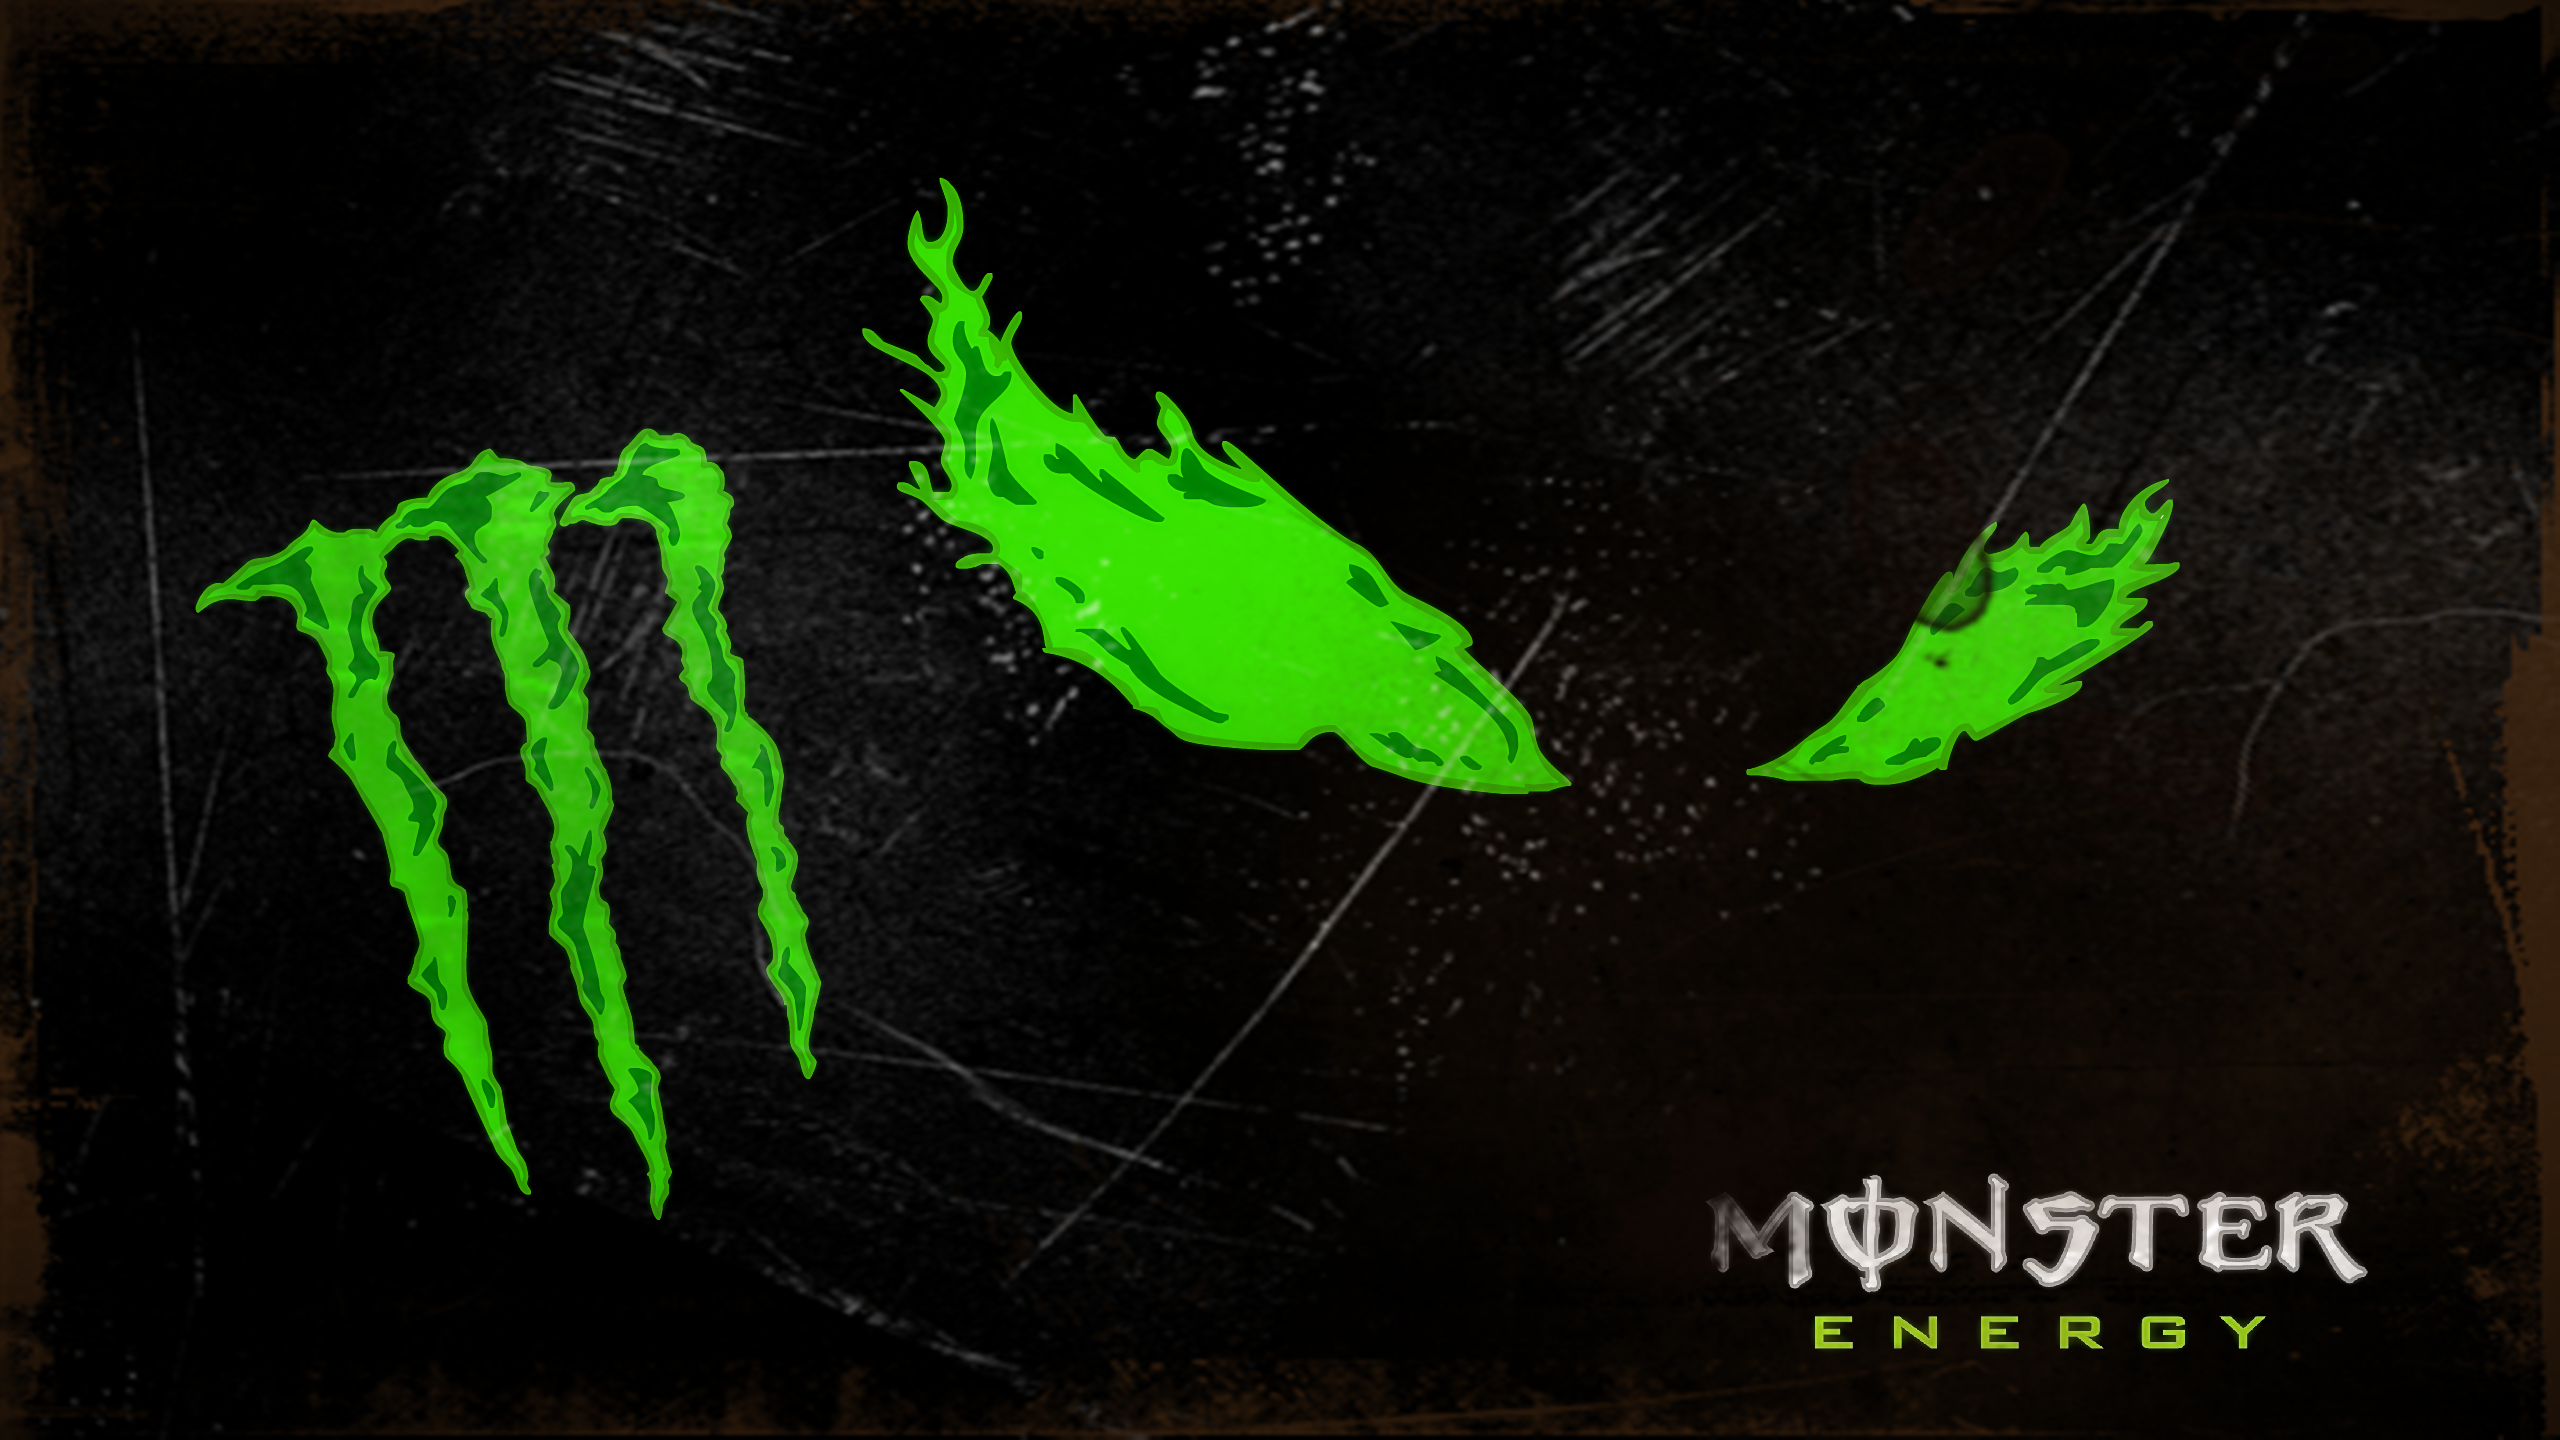 Monster Energy Eyes HD Wallpaper Image Gallery Drink 2560x1440